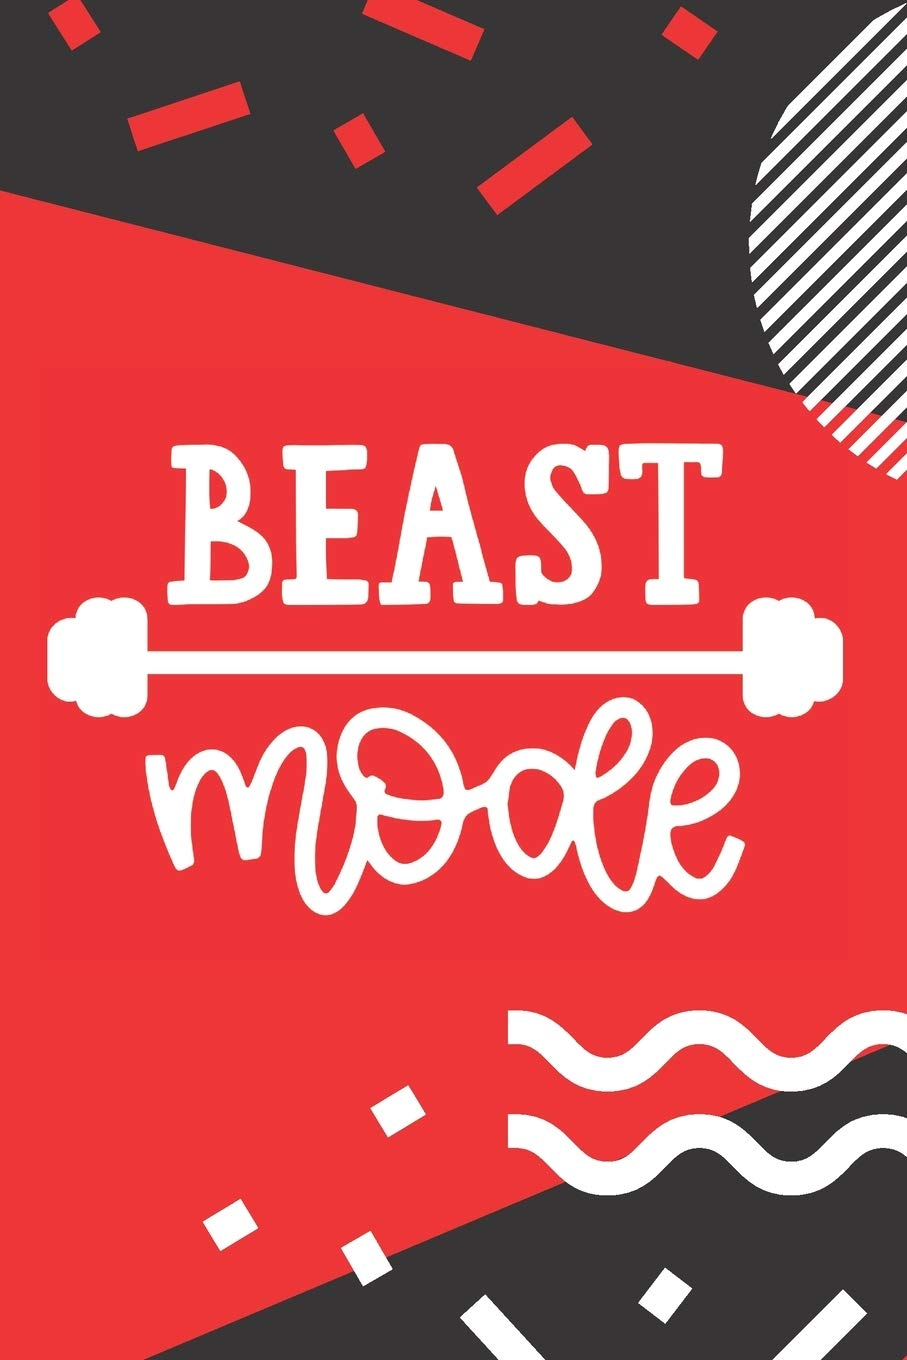 Buy Beast Mode Funny Fitness Journal Motivational Workout Log Book Weight Loss Planner Exercise Track Your Progress Lifting Diary Cardio Hiit Crossfit Quotes Red Black And White Modern Design Book